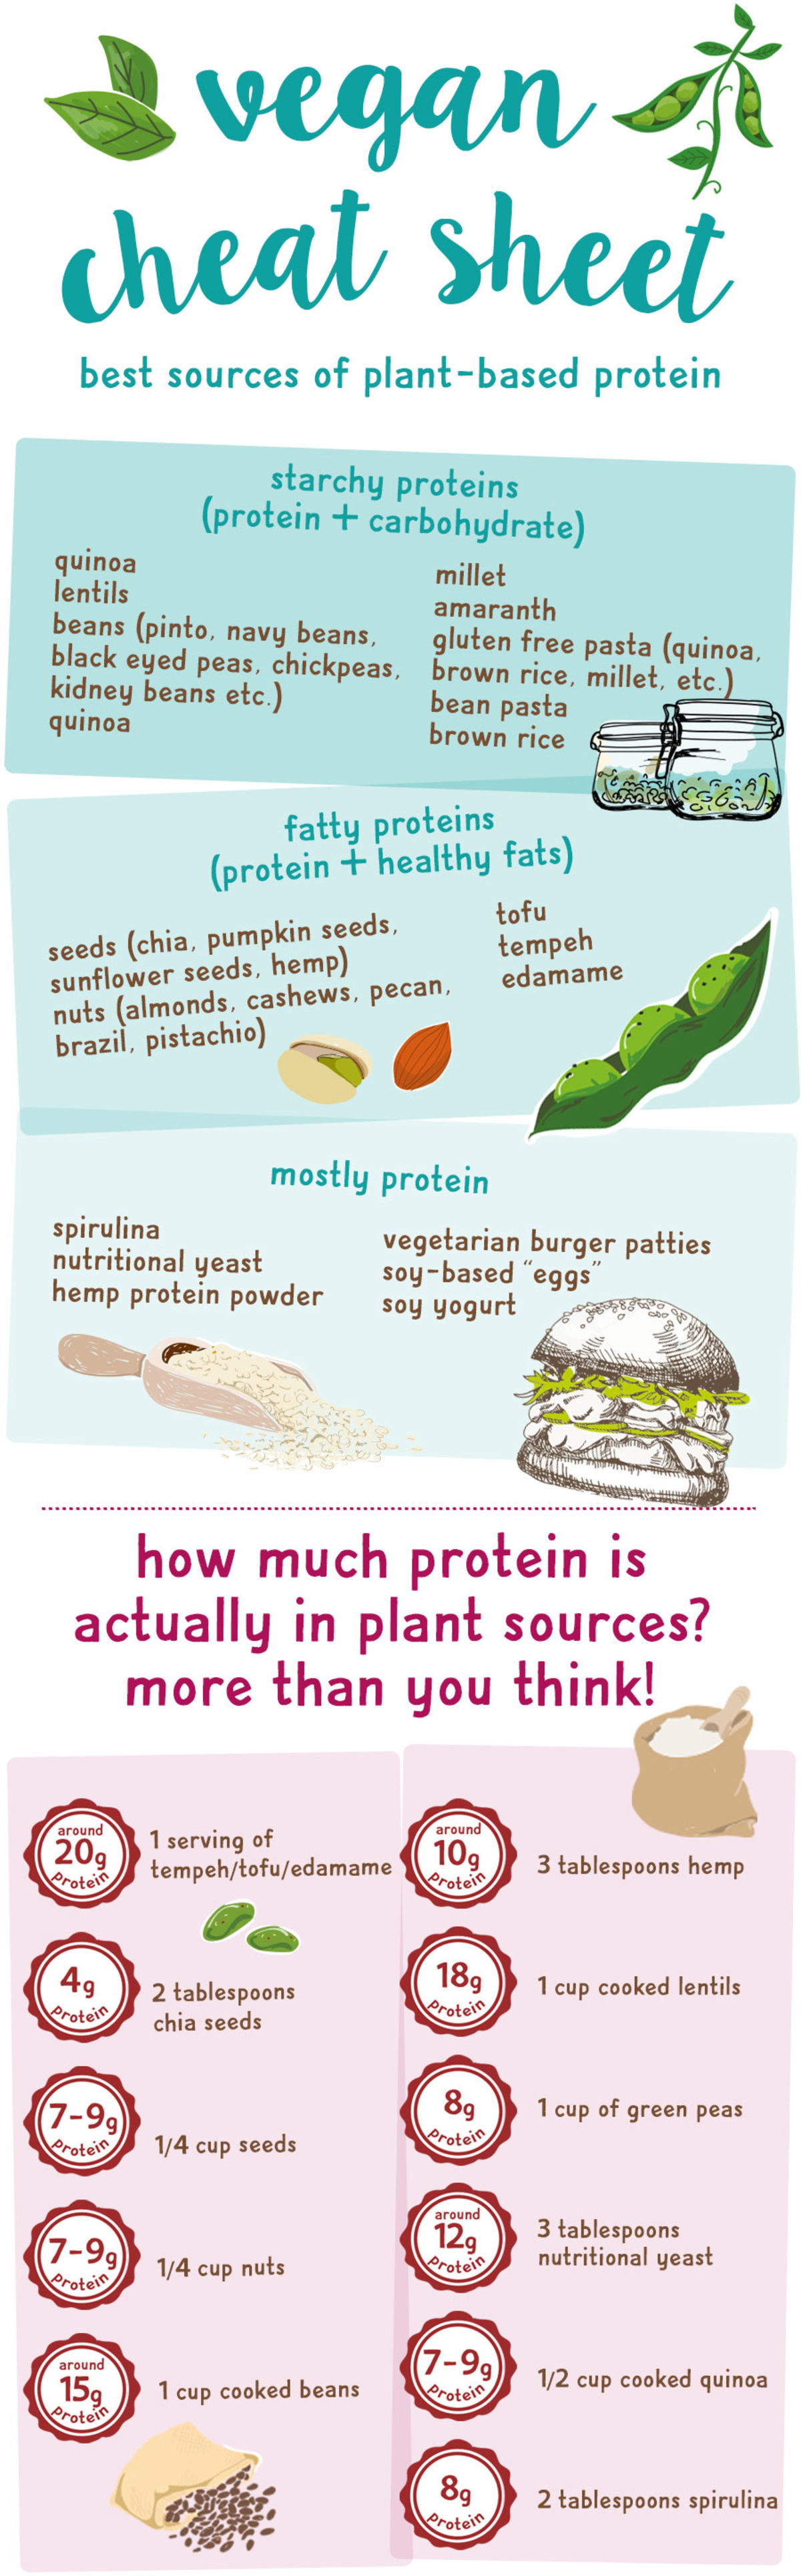 vegan cheat sheet diet guide infographic plant-based protein